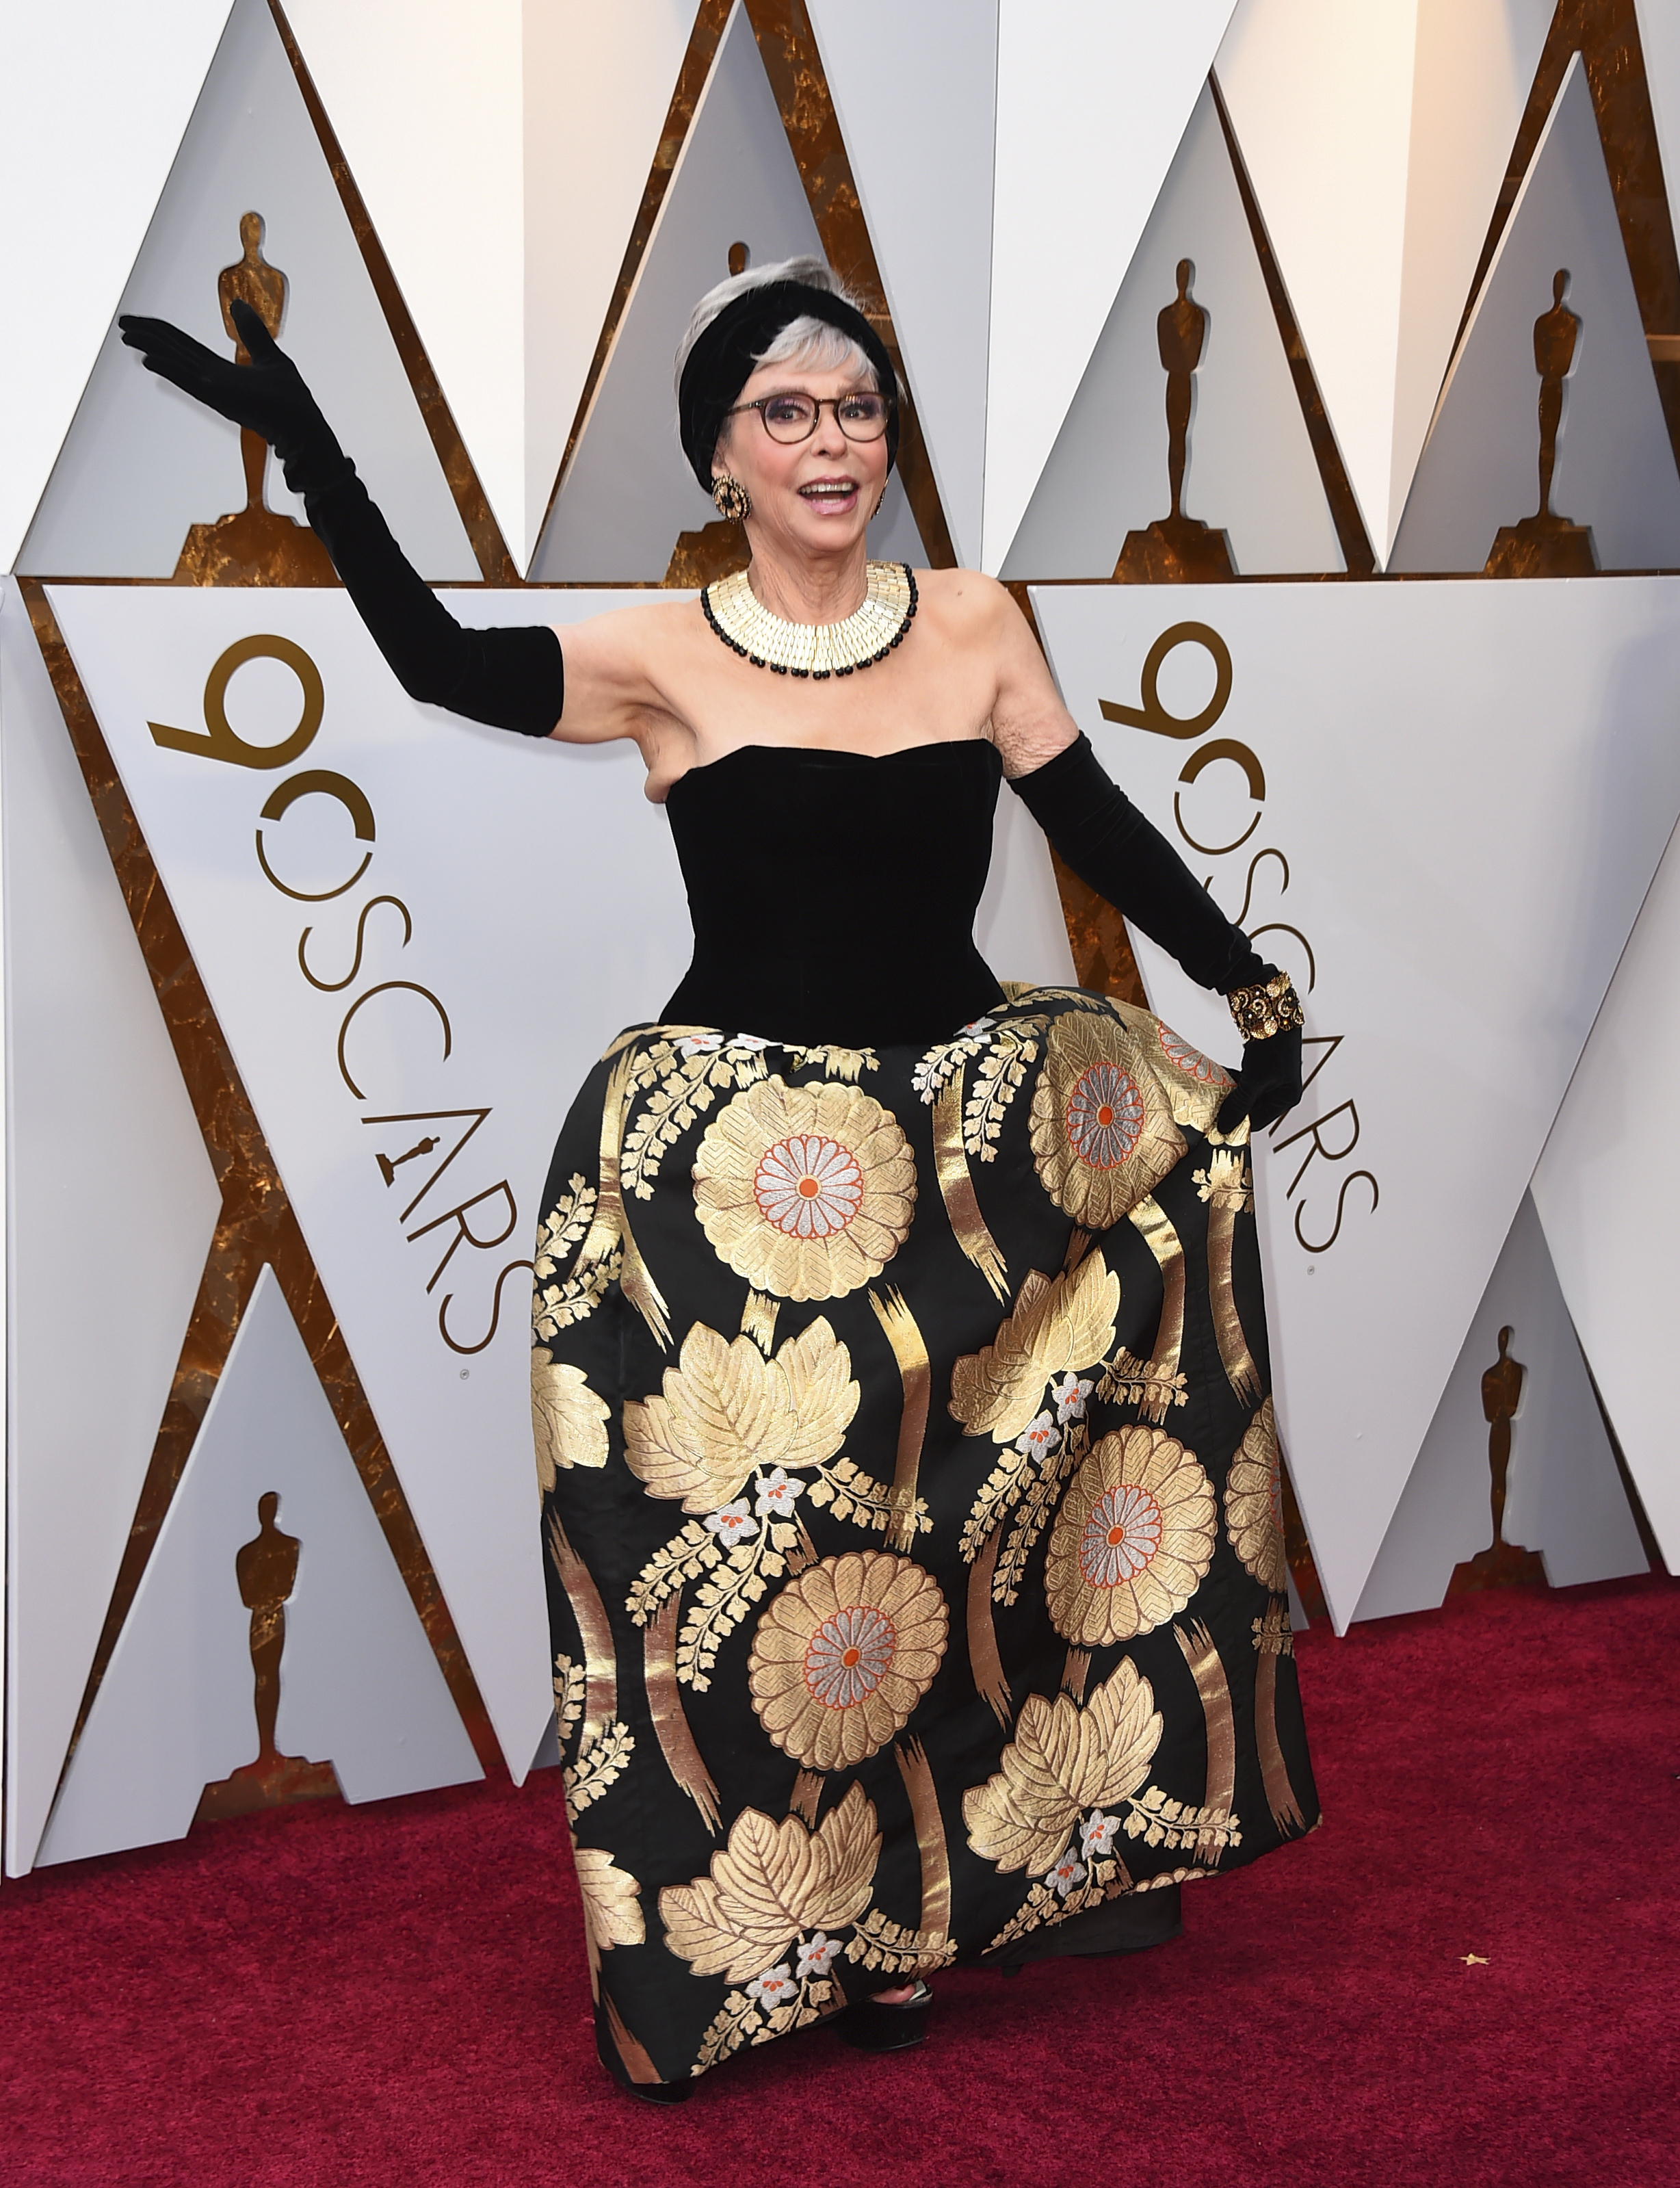 <div class='meta'><div class='origin-logo' data-origin='none'></div><span class='caption-text' data-credit='Jordan Strauss/Invision/AP'>Rita Moreno arrives at the Oscars on Sunday, March 4, 2018, at the Dolby Theatre in Los Angeles.</span></div>